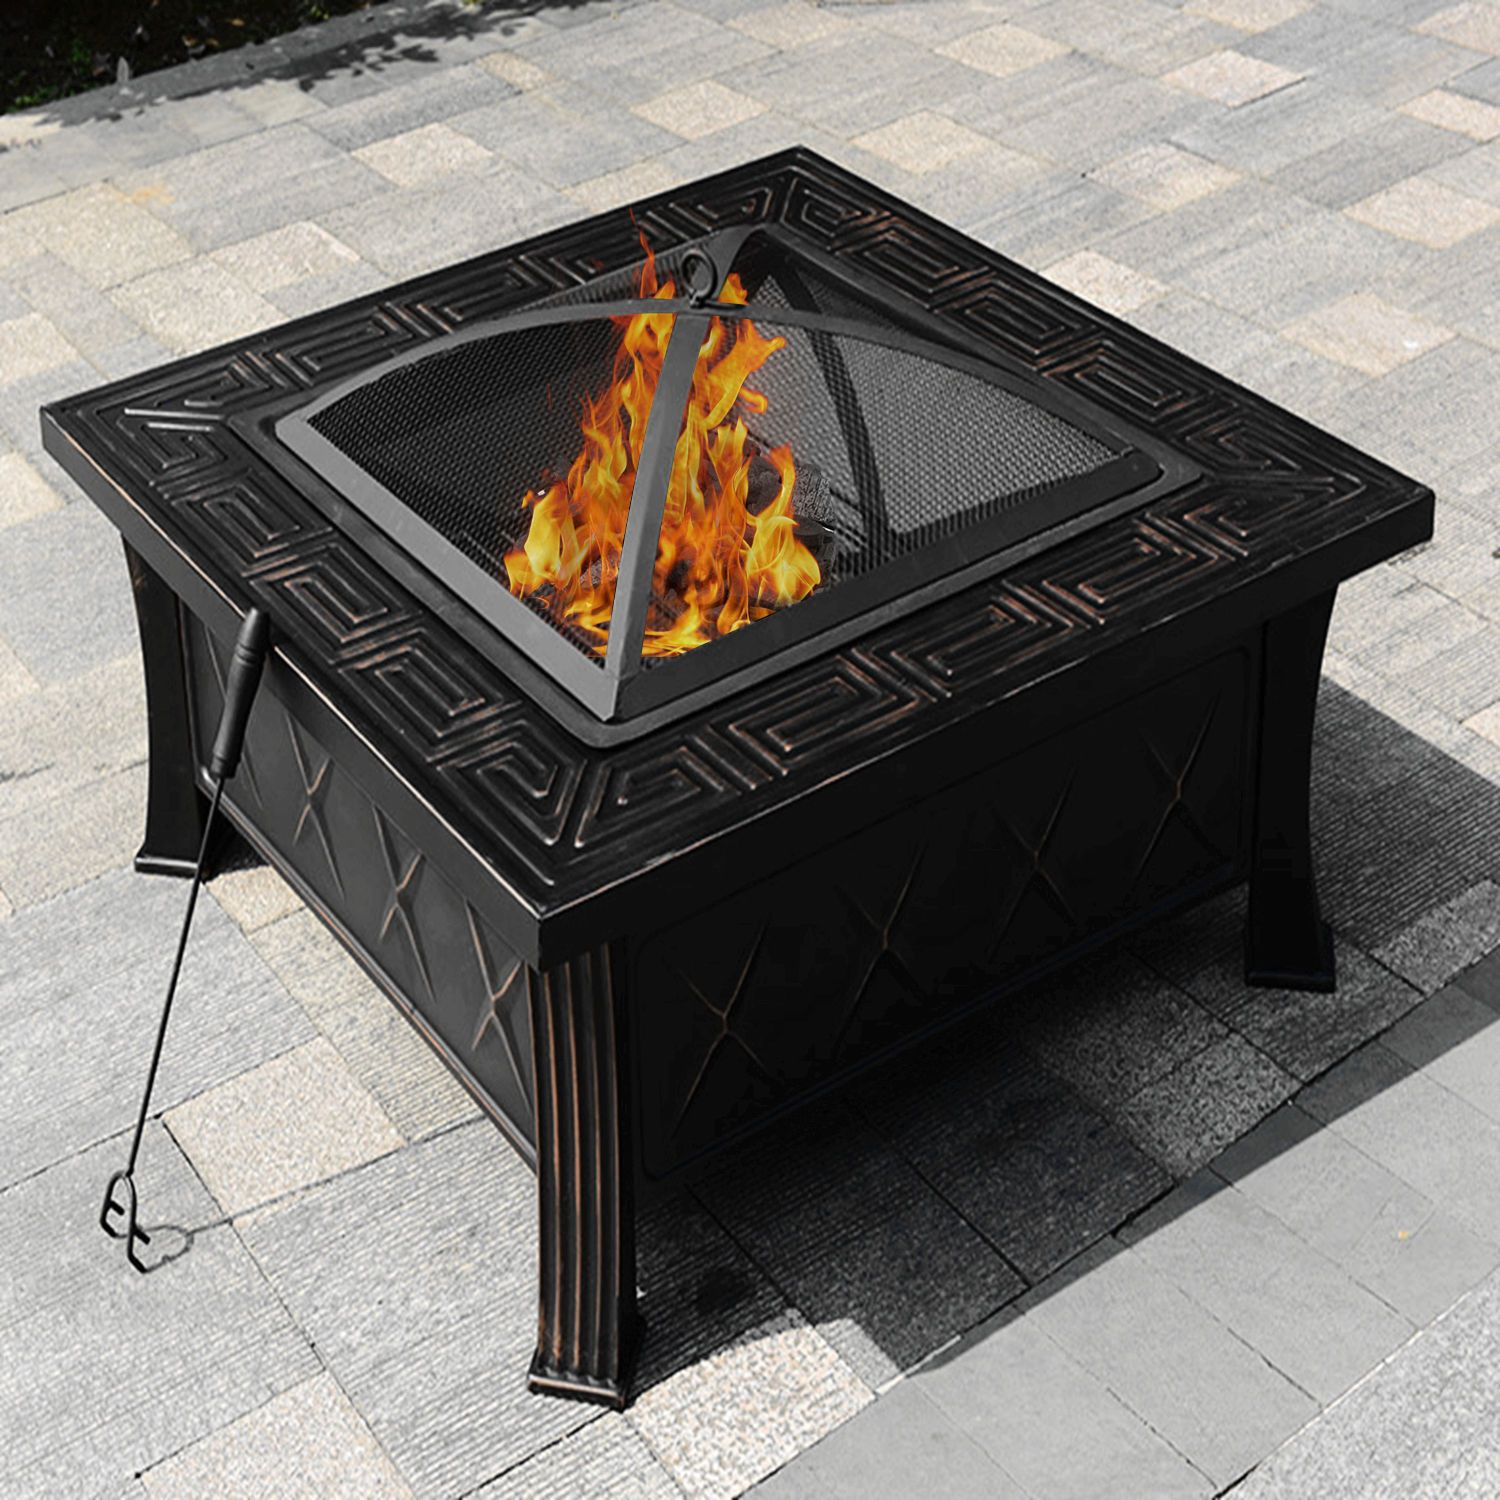 32 Square Fire Pit Fire Bowl Outdoor Bbq Burning Grill Patio Poker Grate Cover Fire Pits With Images Wood Fire Pit Propane Fire Pit Table Square Fire Pit